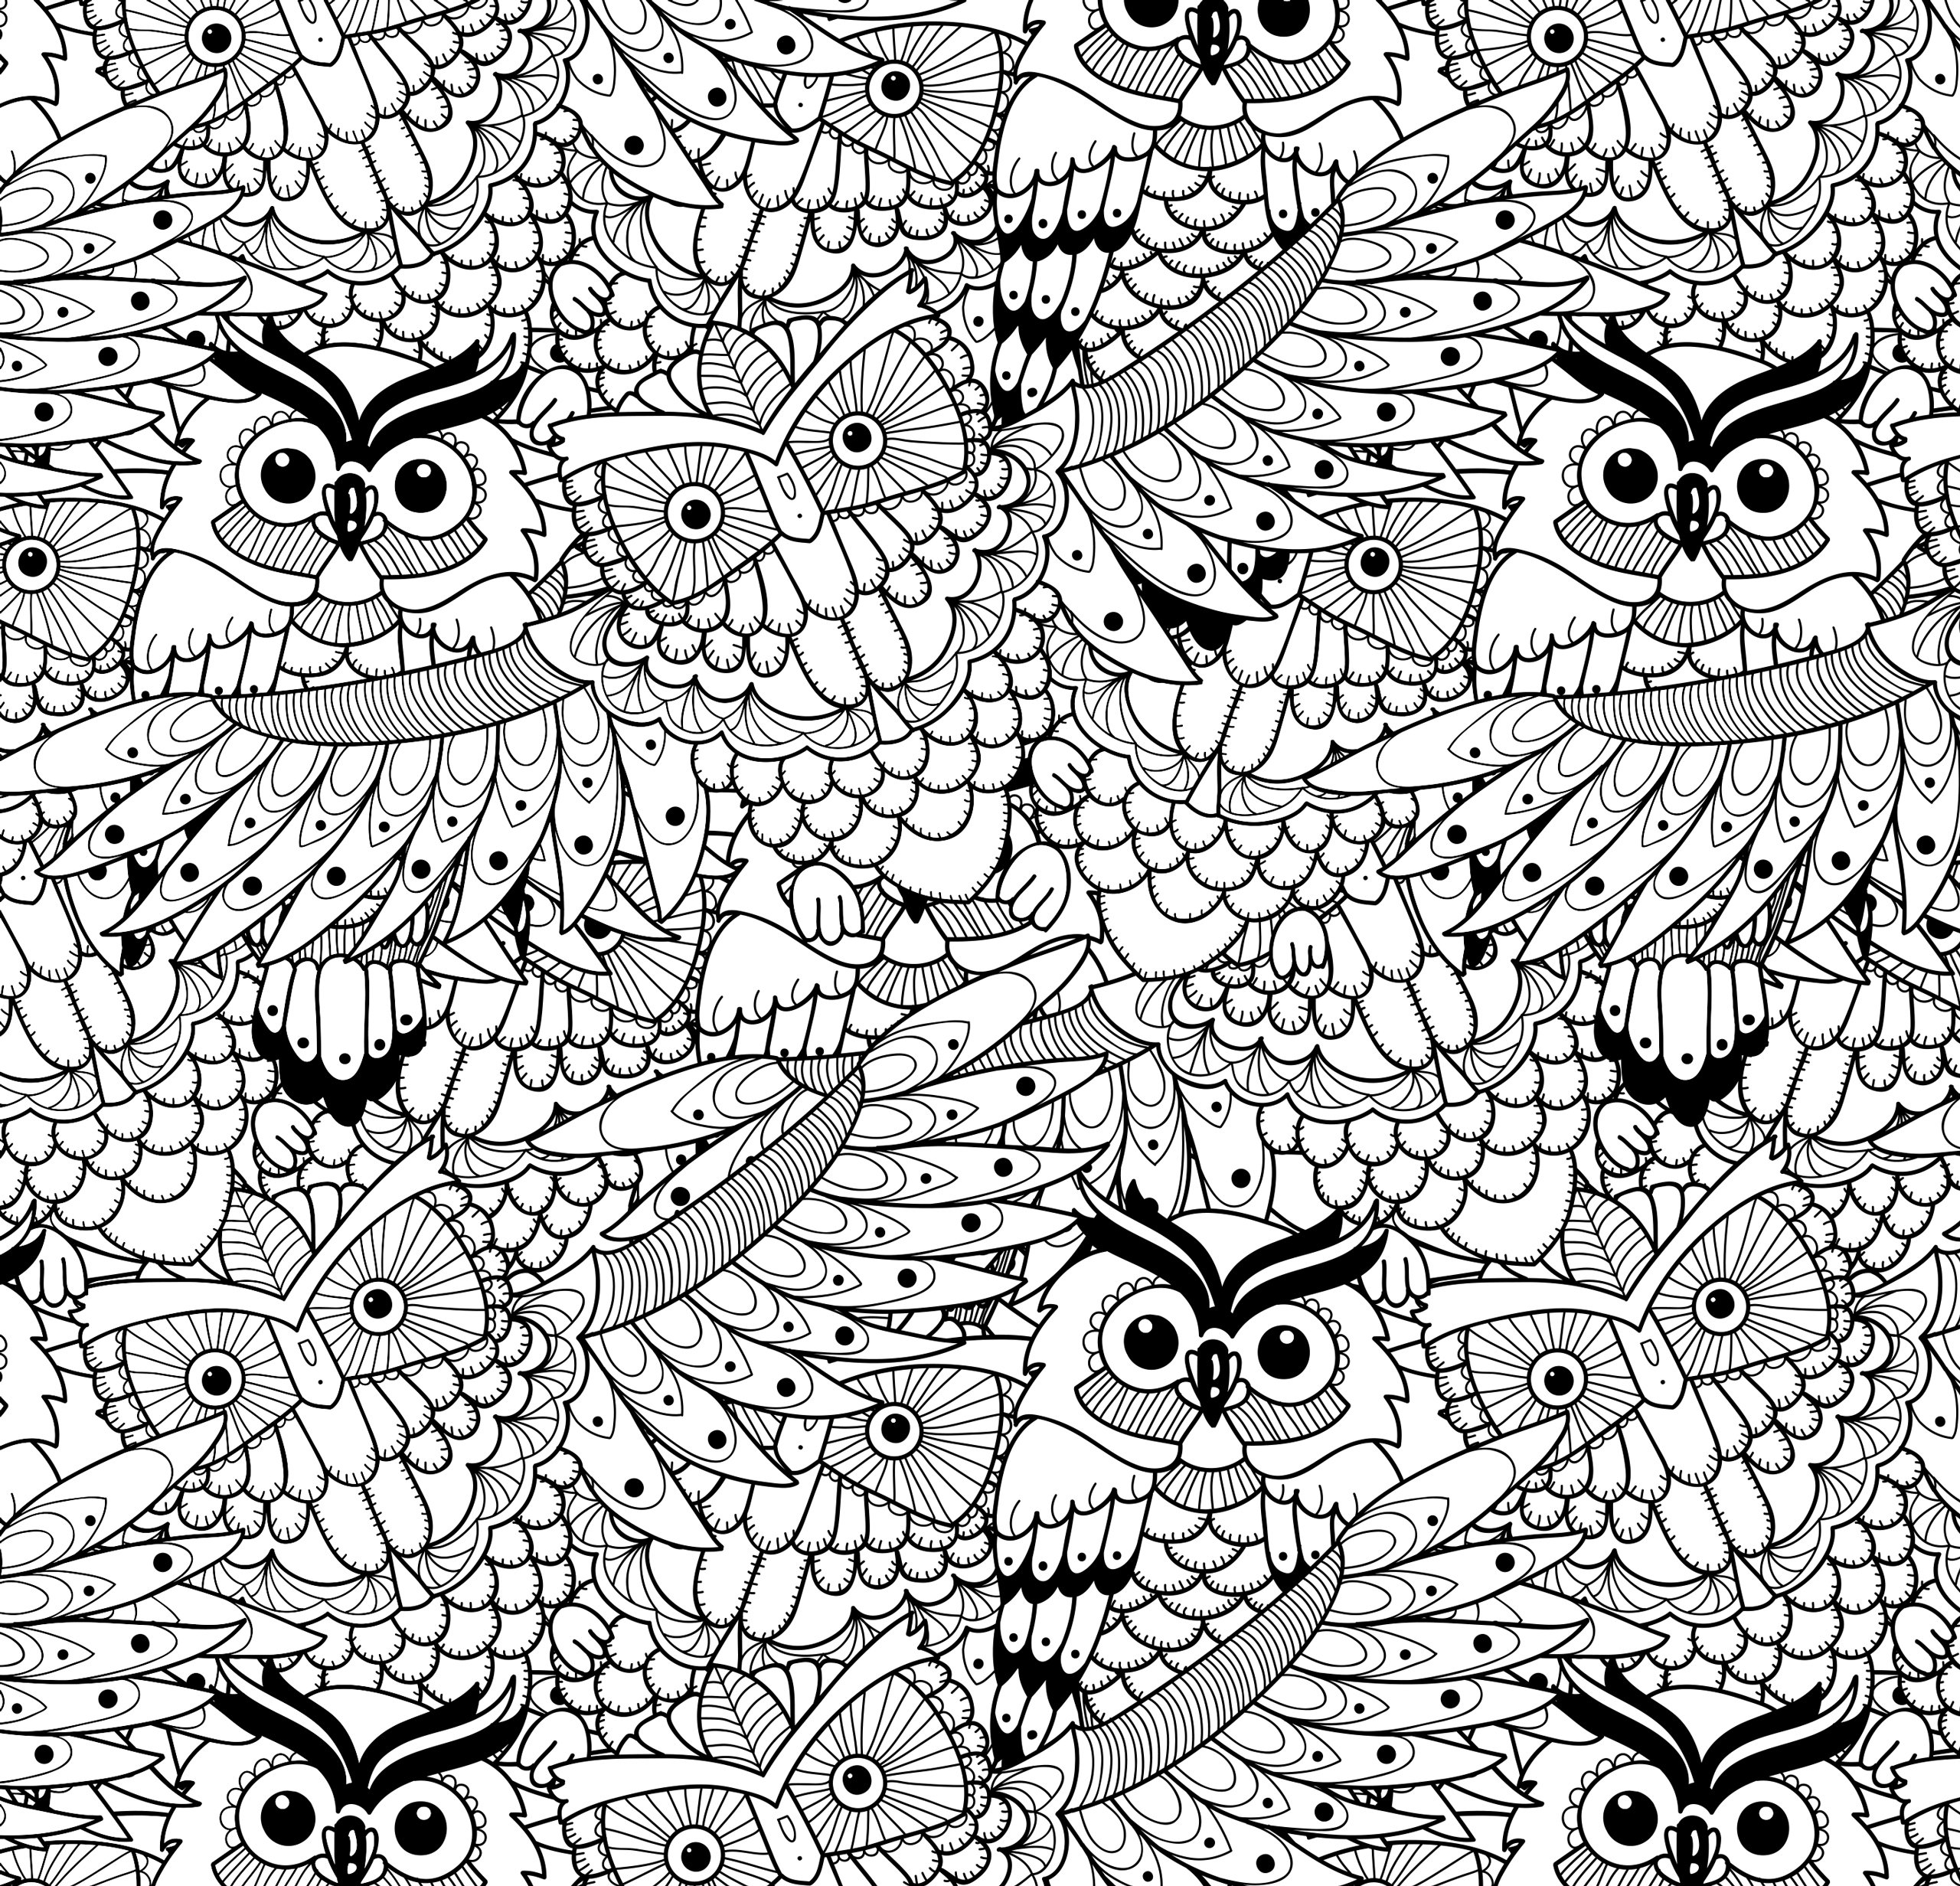 Owl town coloring book 31 stress relieving designs amazon ca peter pauper press books